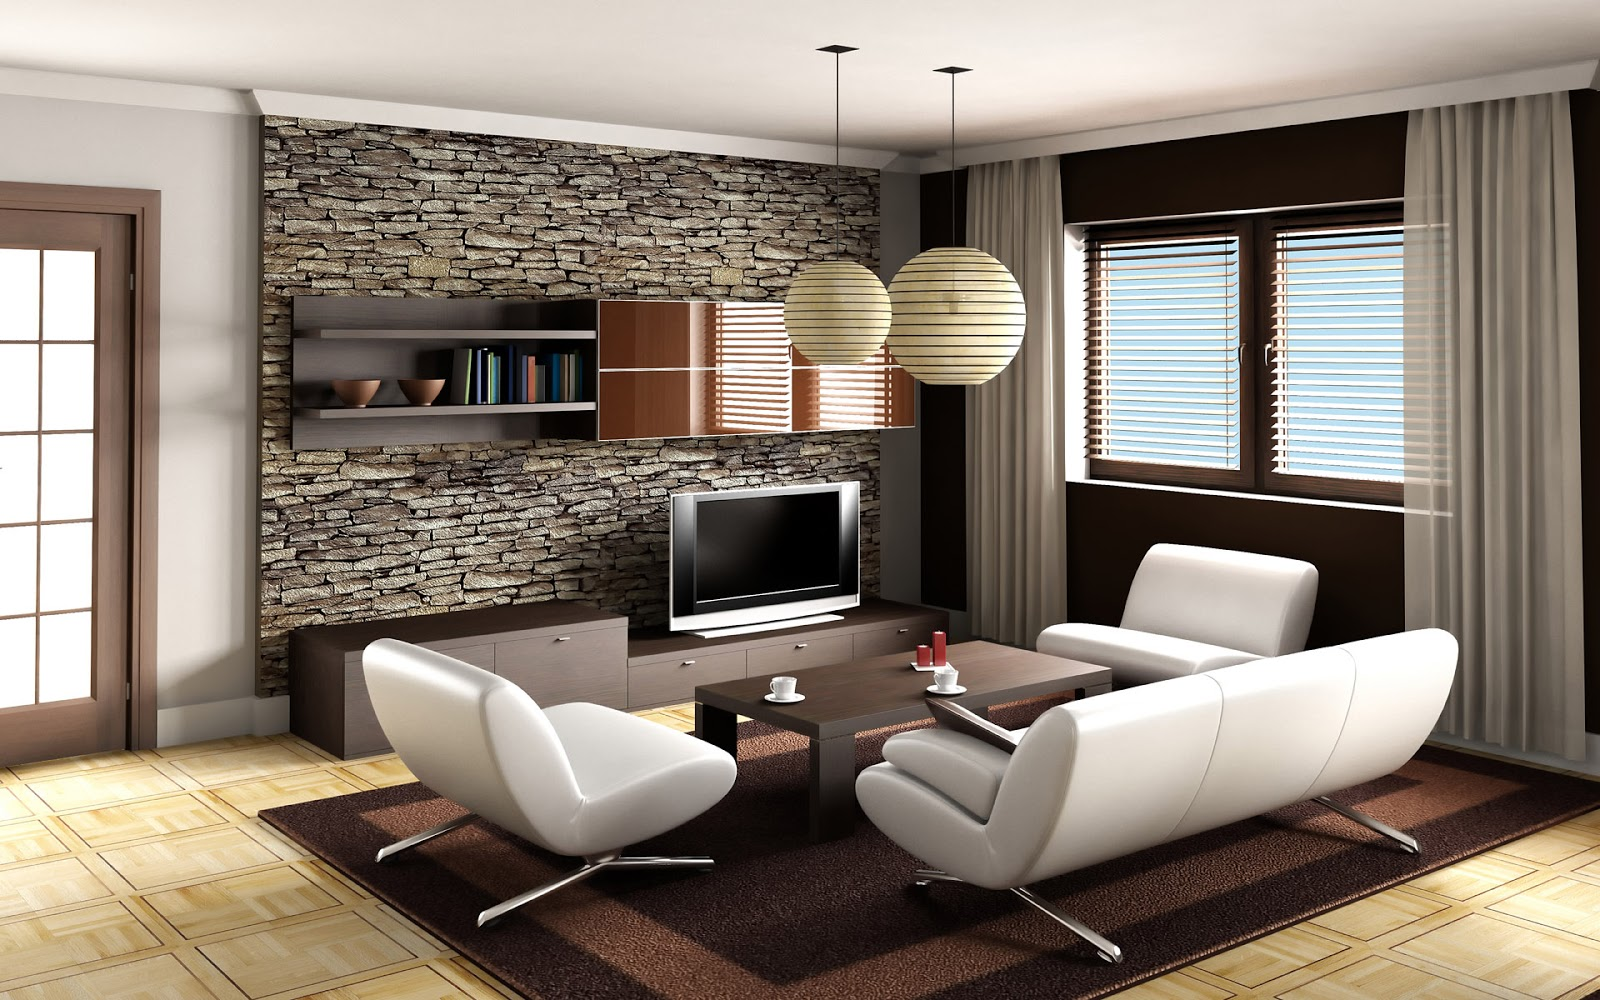 Arrangement of luxury living room ideas dream house for Modern living room design ideas 2013